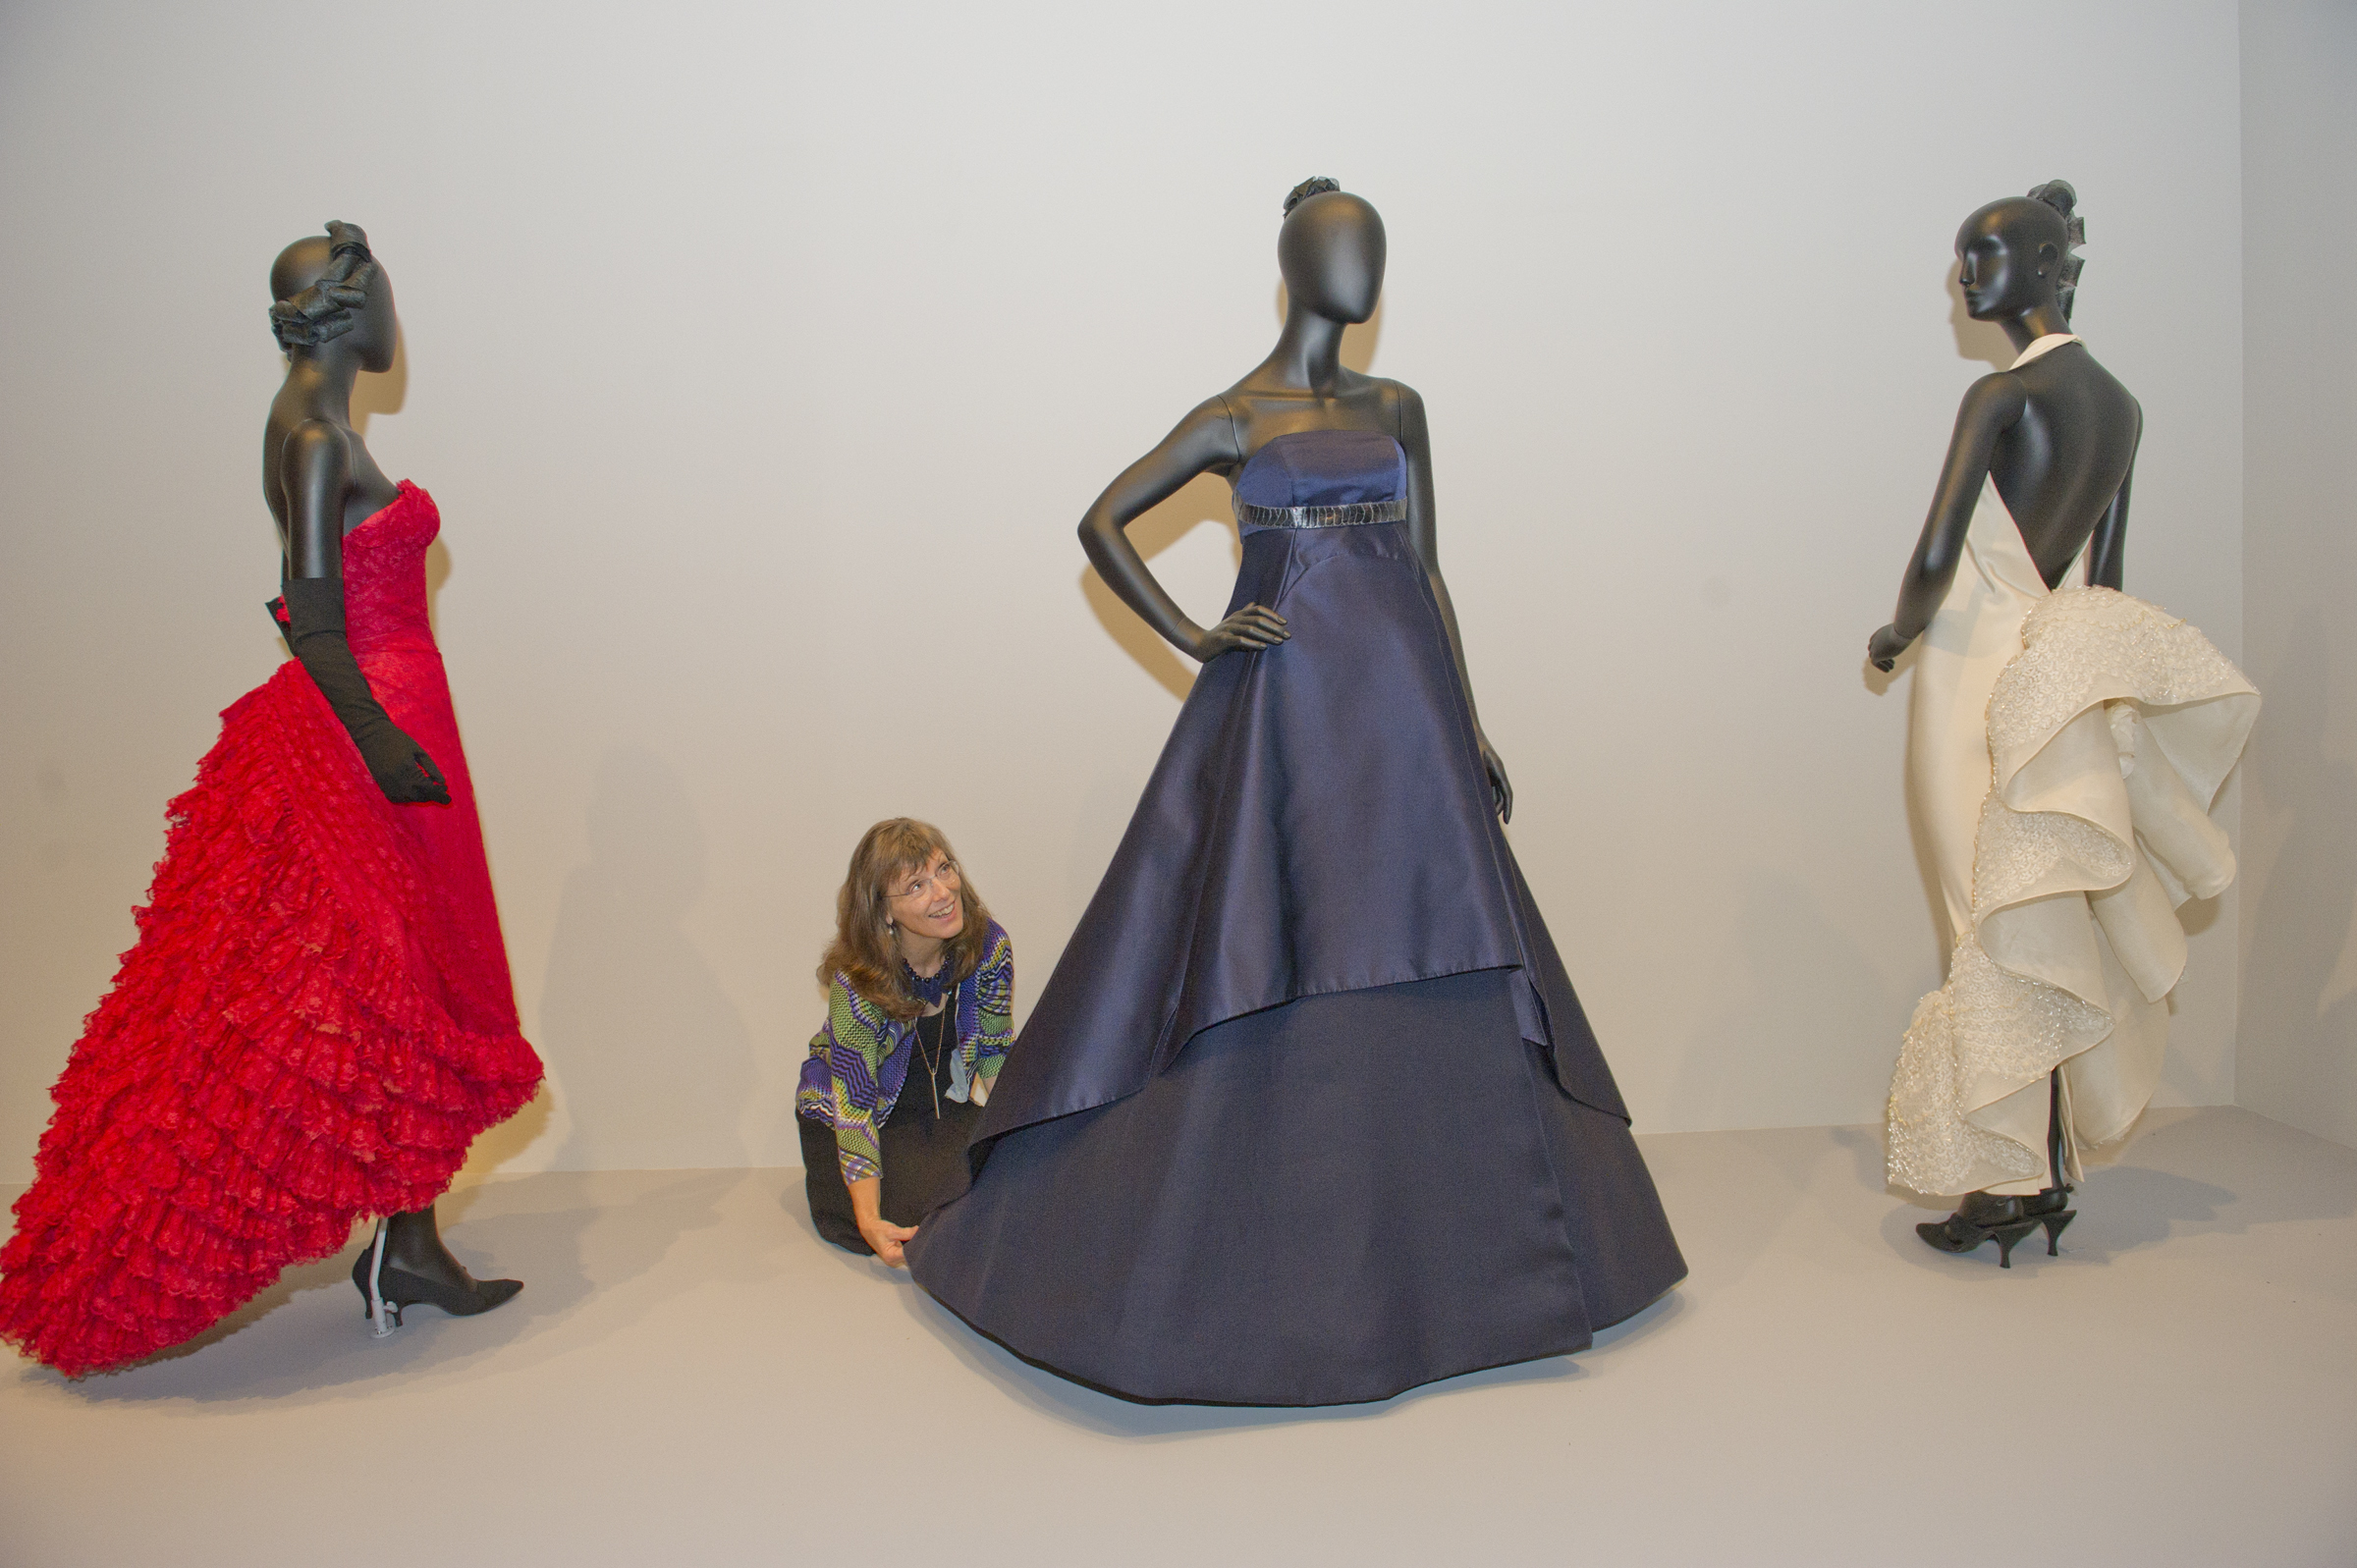 Curator Kristina Haugland fluffs up dresses, part of a new exhibit at the Philadelphia Museum of Art Dorrance Special Exhibition Galleries, October 5, 2018. The dresses are (L to R) A red lace evening gown by Jean DessŽs, circa 1958-59, A Ralph Rucci sting ray swan evening dress, circa, 2007, and a Pierre Cardin bustle back halter dress, circa 1990. Avi Steinhardt / For the Inquirer